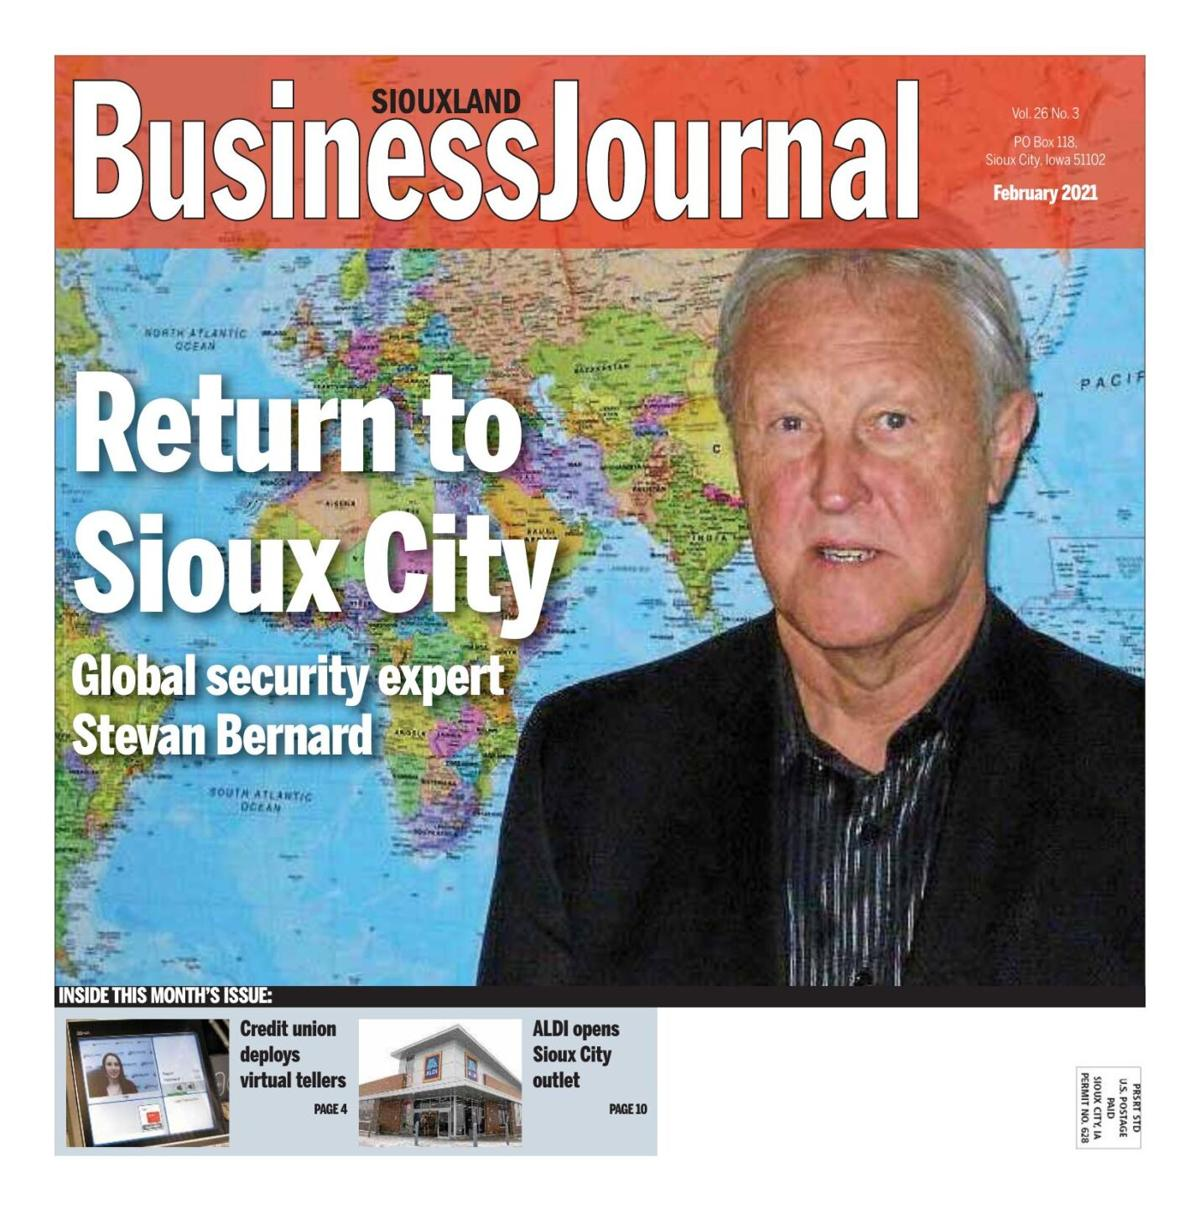 Business Journal - February 2021